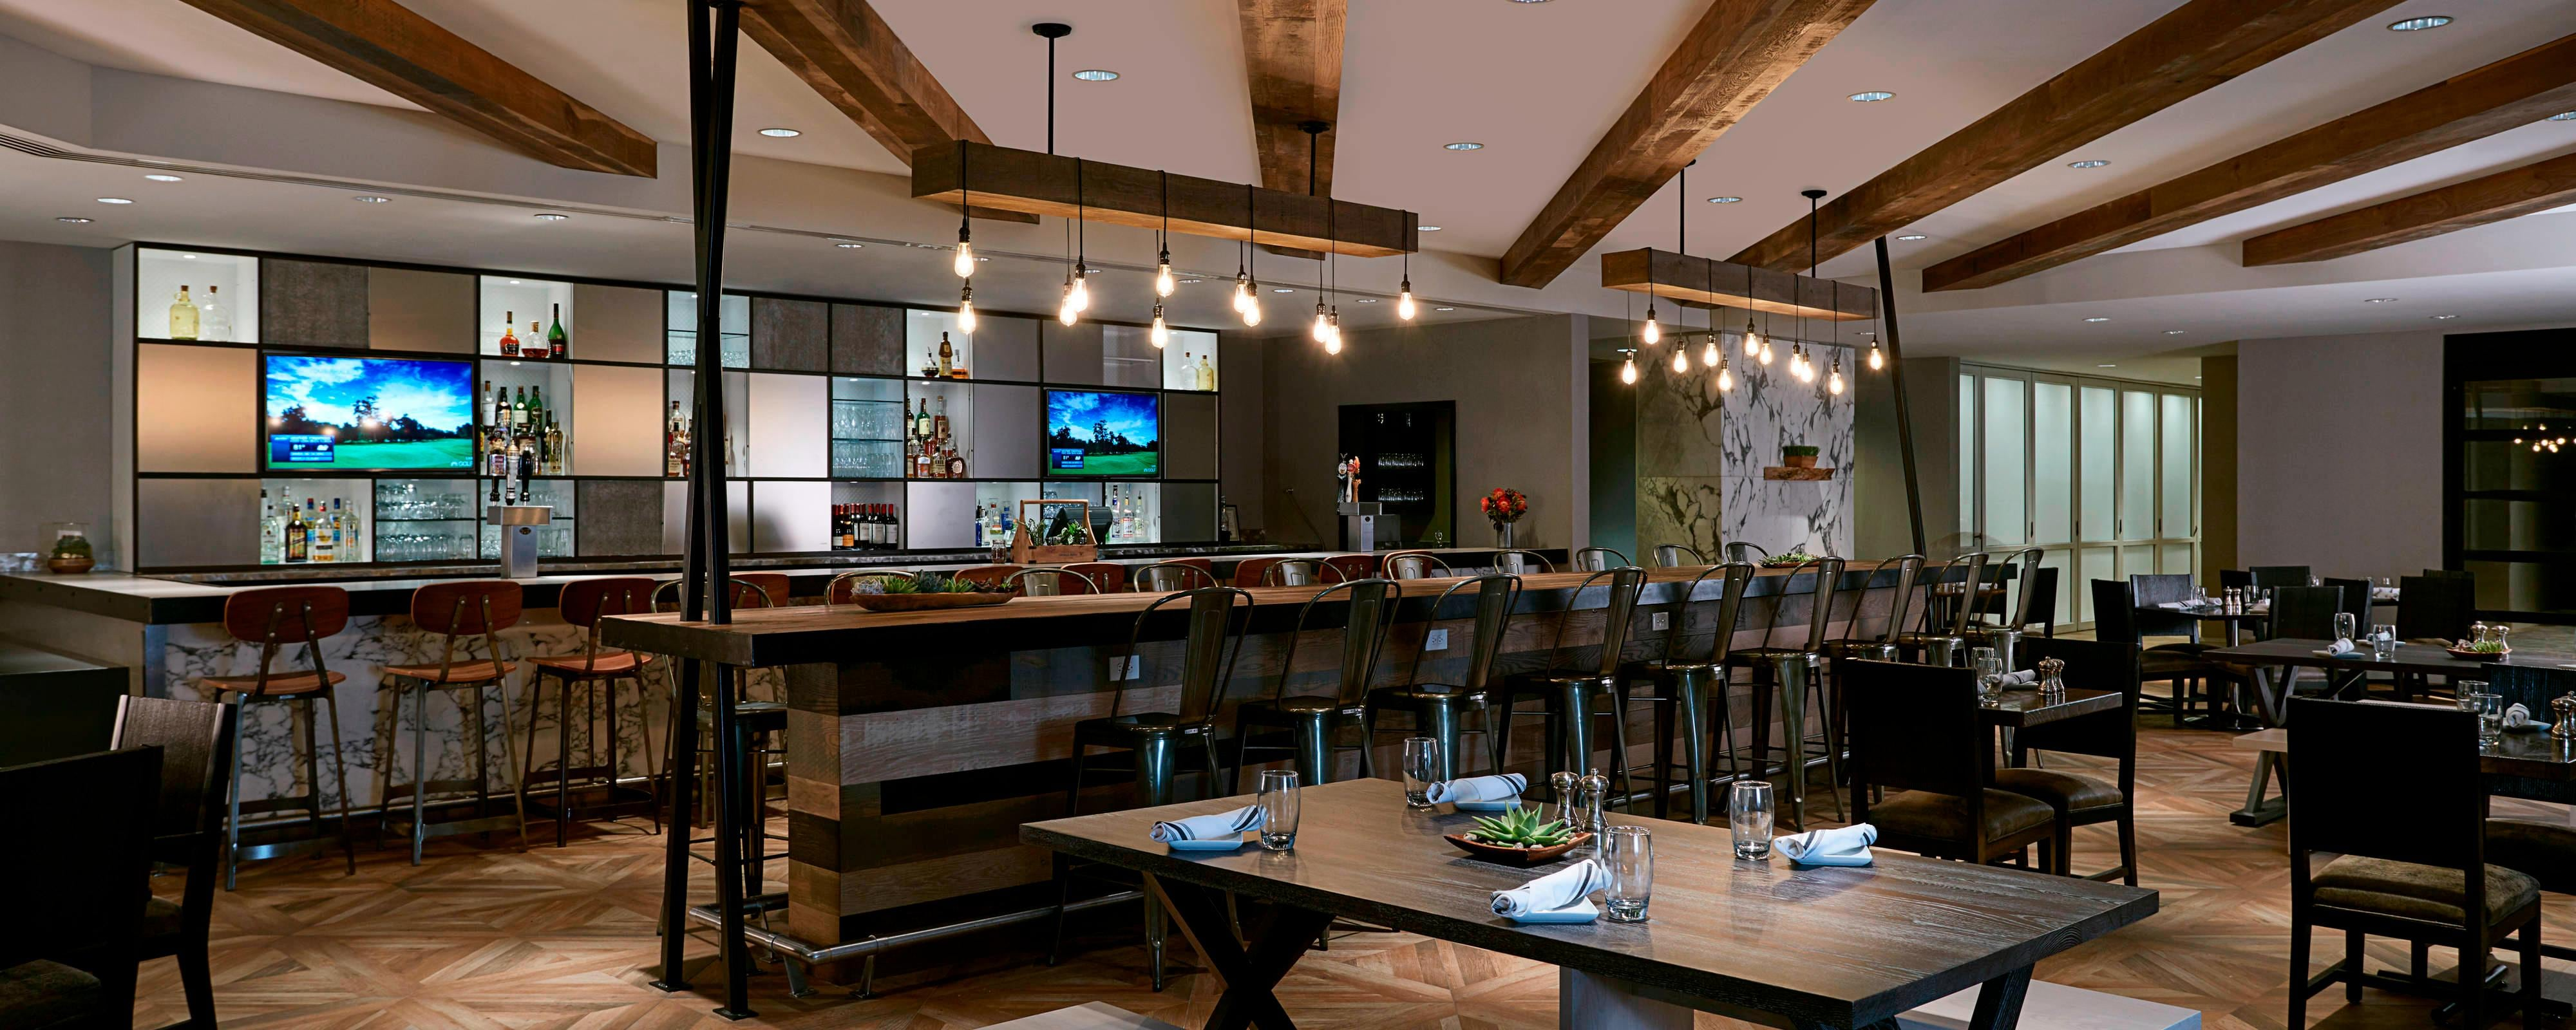 Farm to Table Restaurants in Bethesda, Maryland | Bethesda Marriott